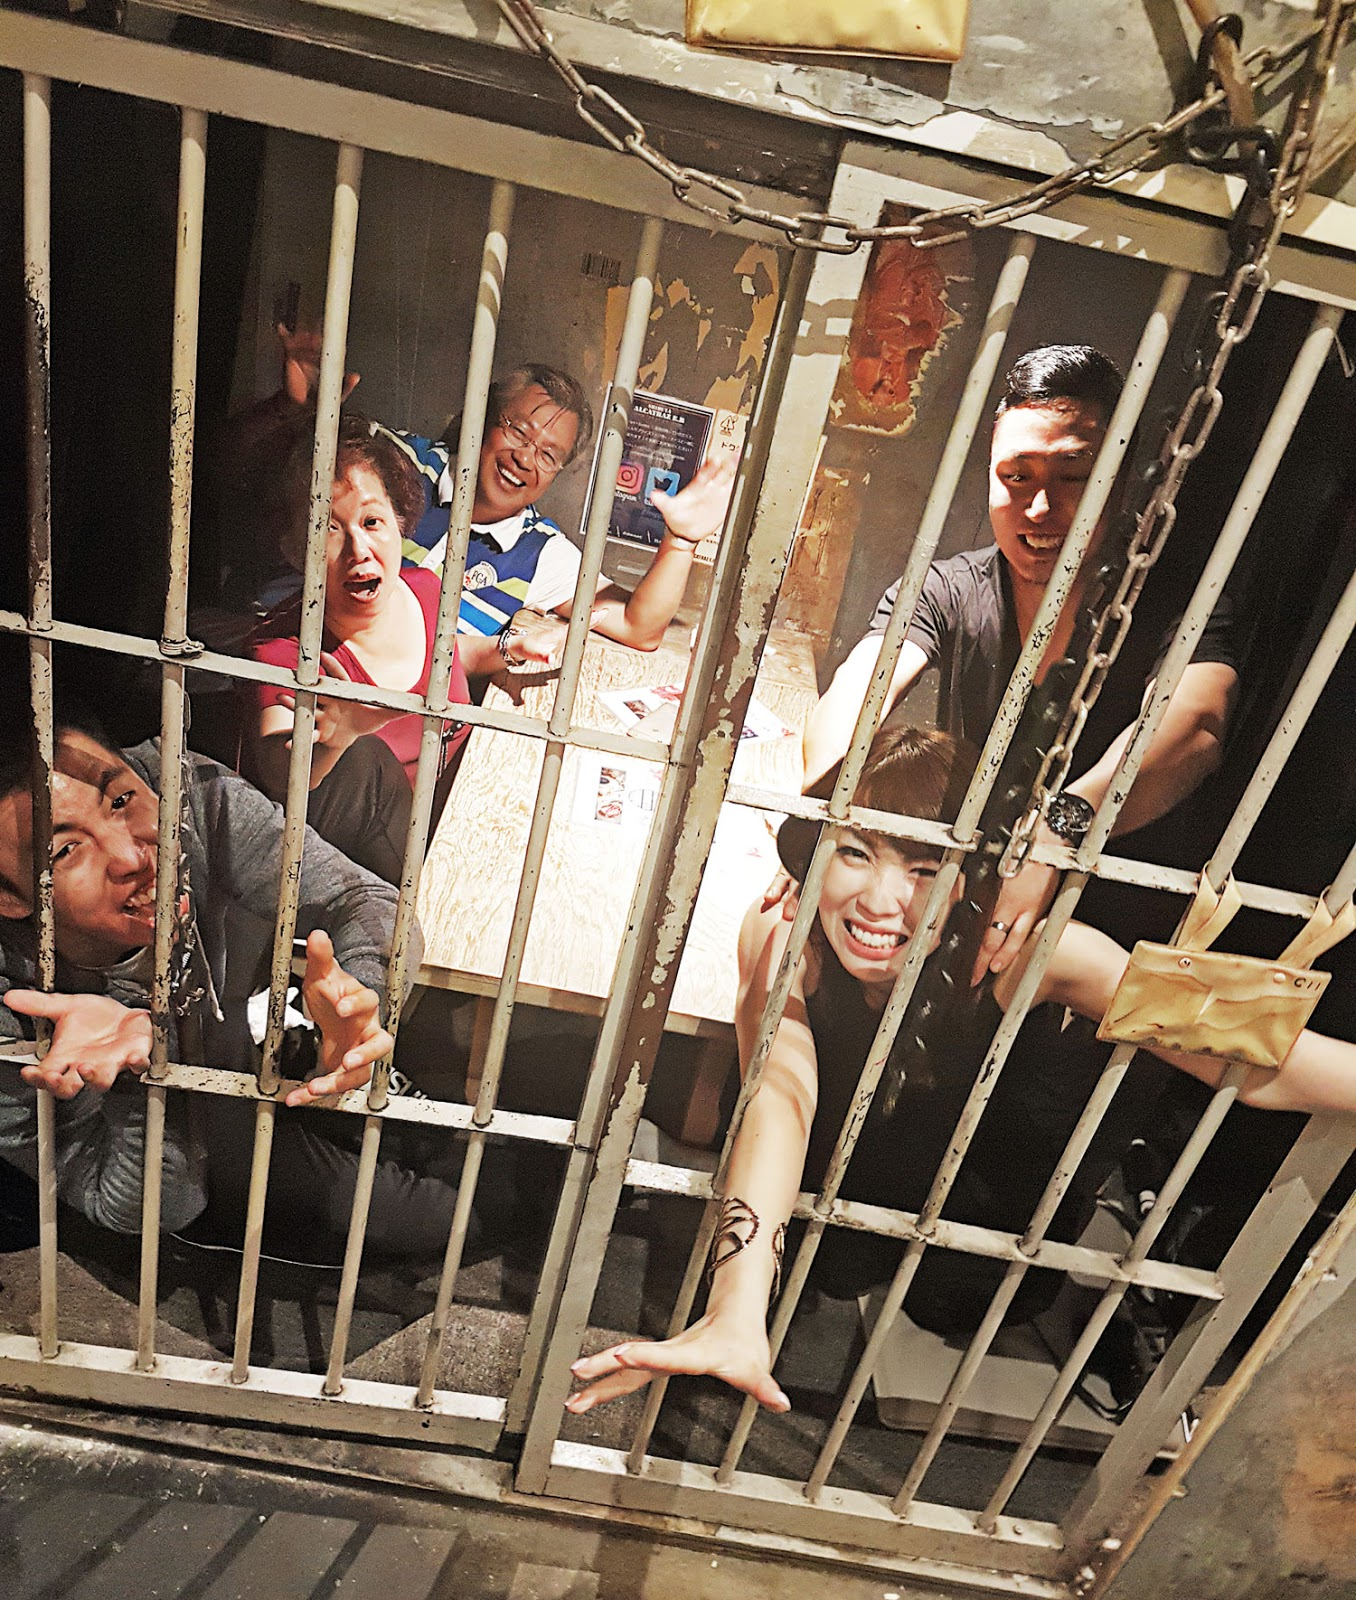 Dining in a prison cell at Alcatraz E.R - a medical themed restaurant in Shibuya, Tokyo